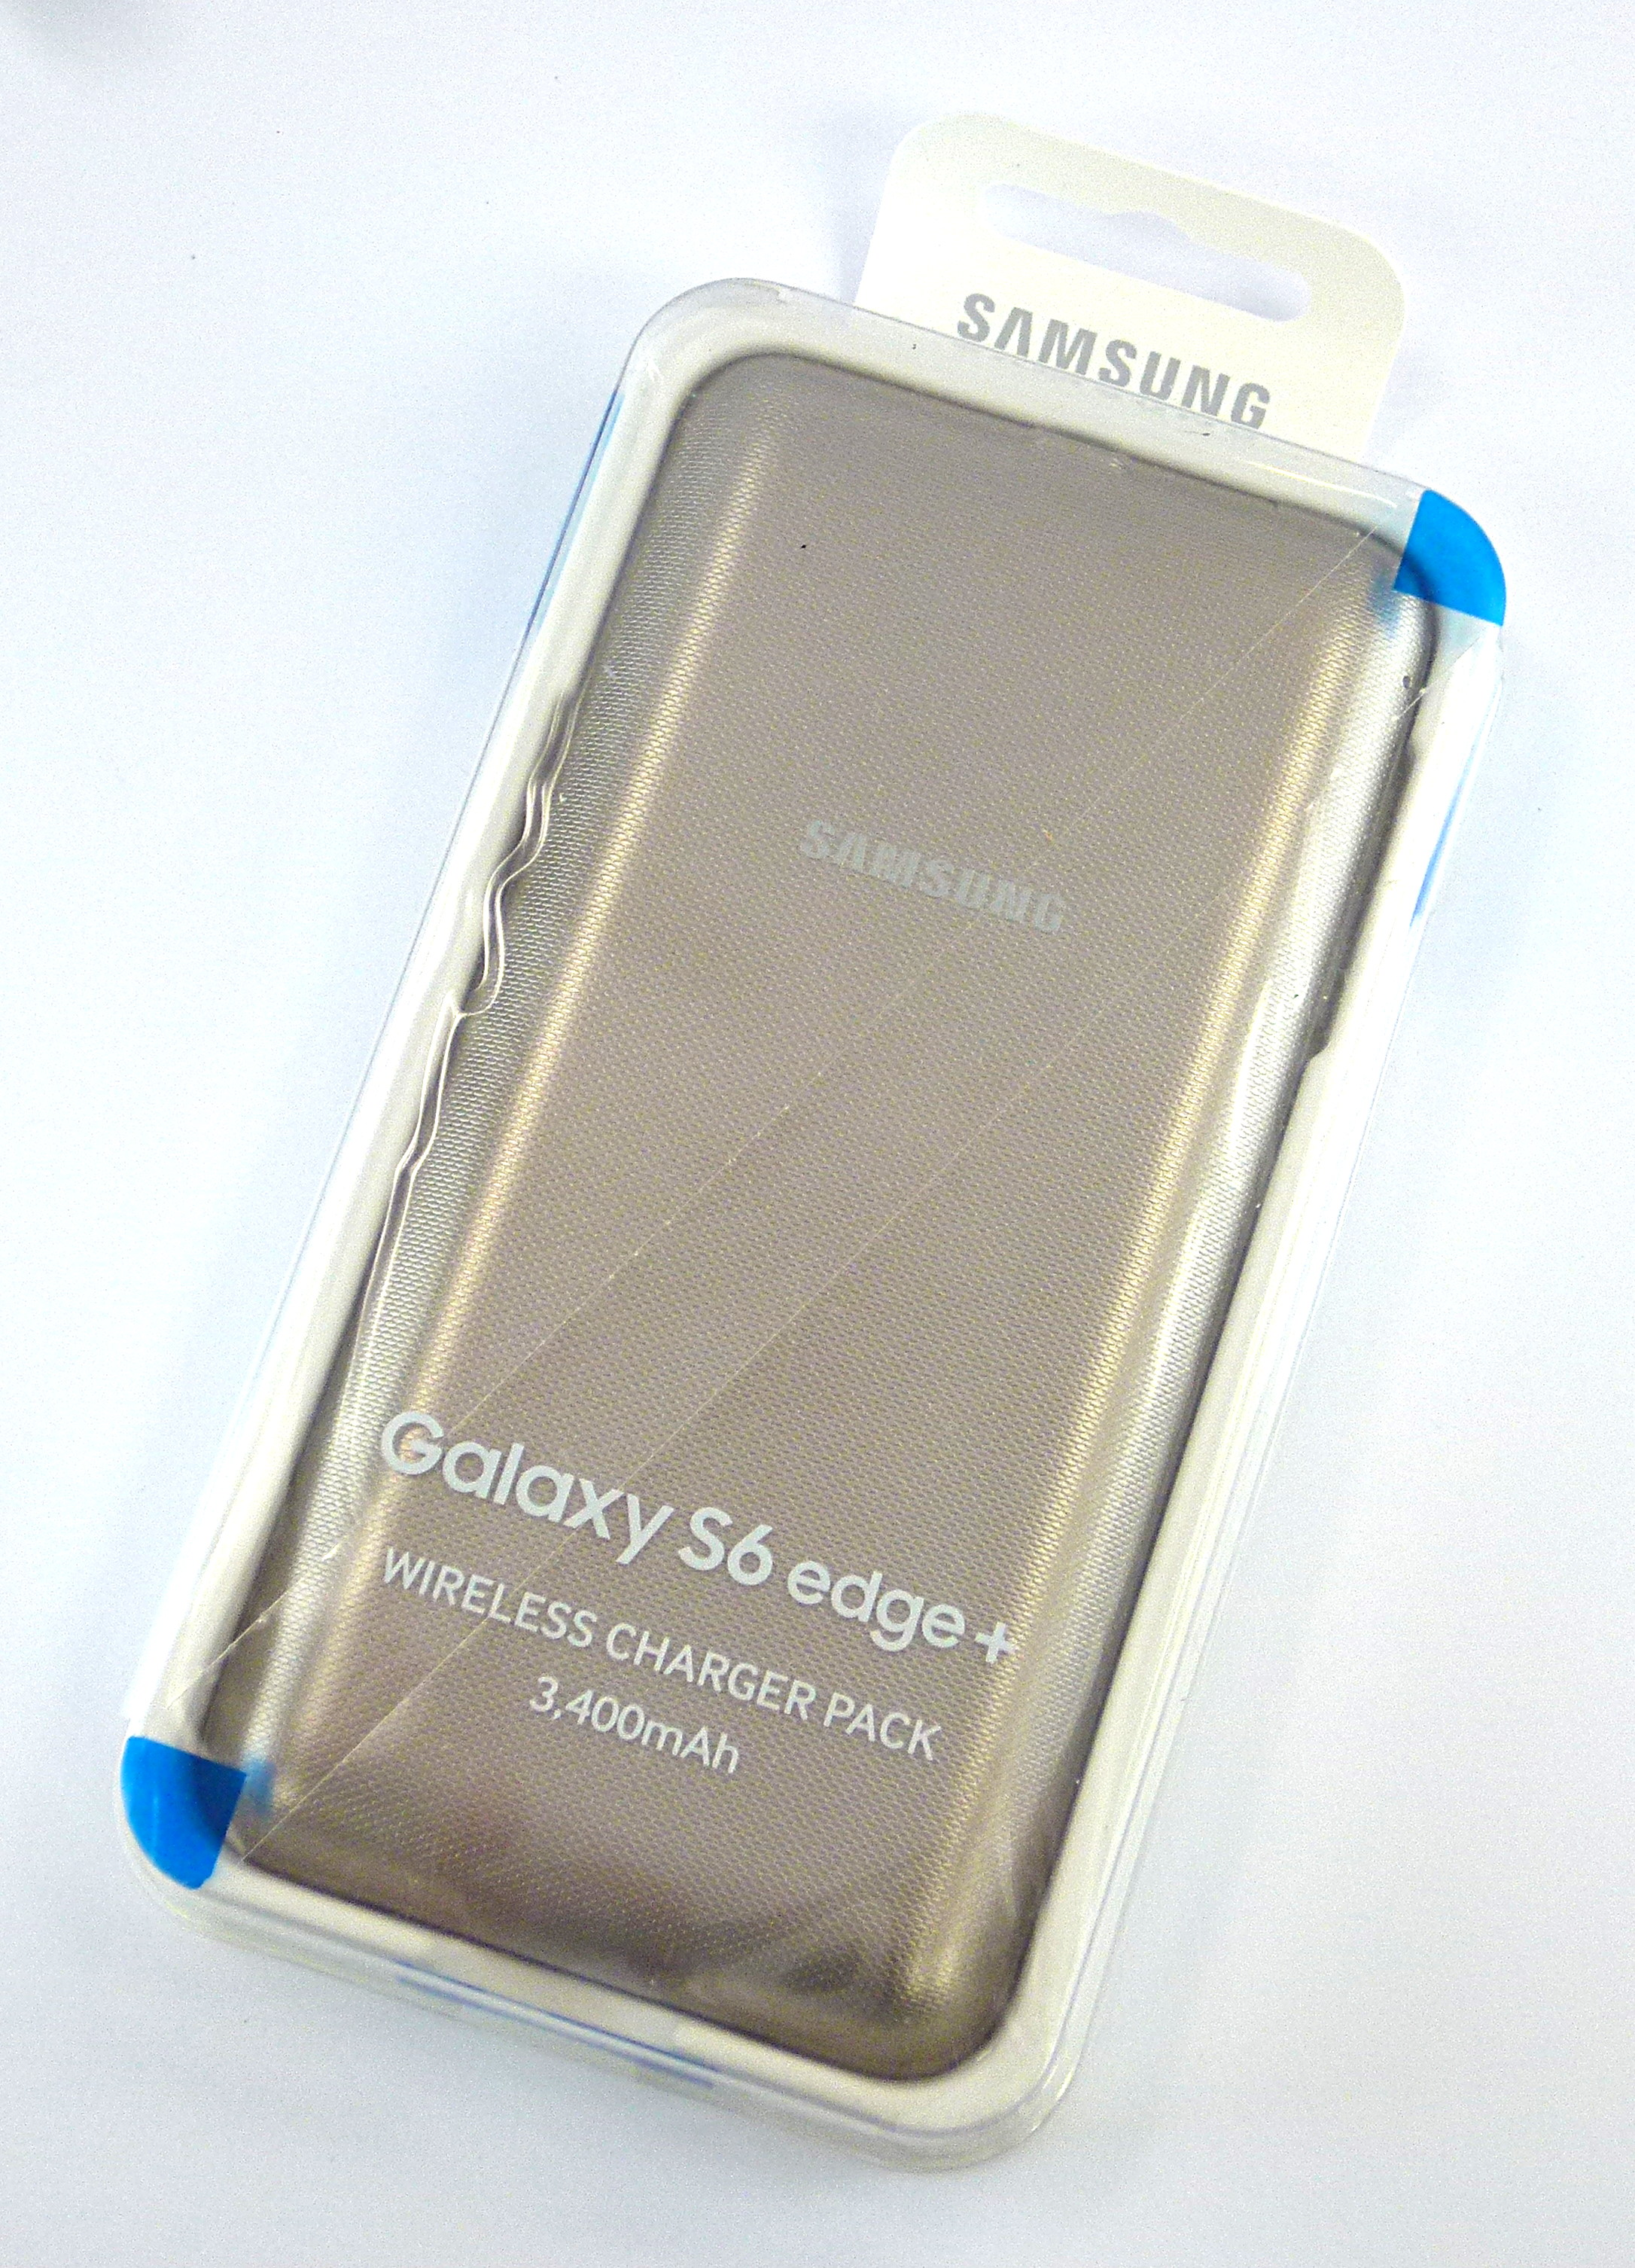 Genuine Samsung EP-TG928 Galaxy S6 Edge + Wireless Battery Charger Pack Gold